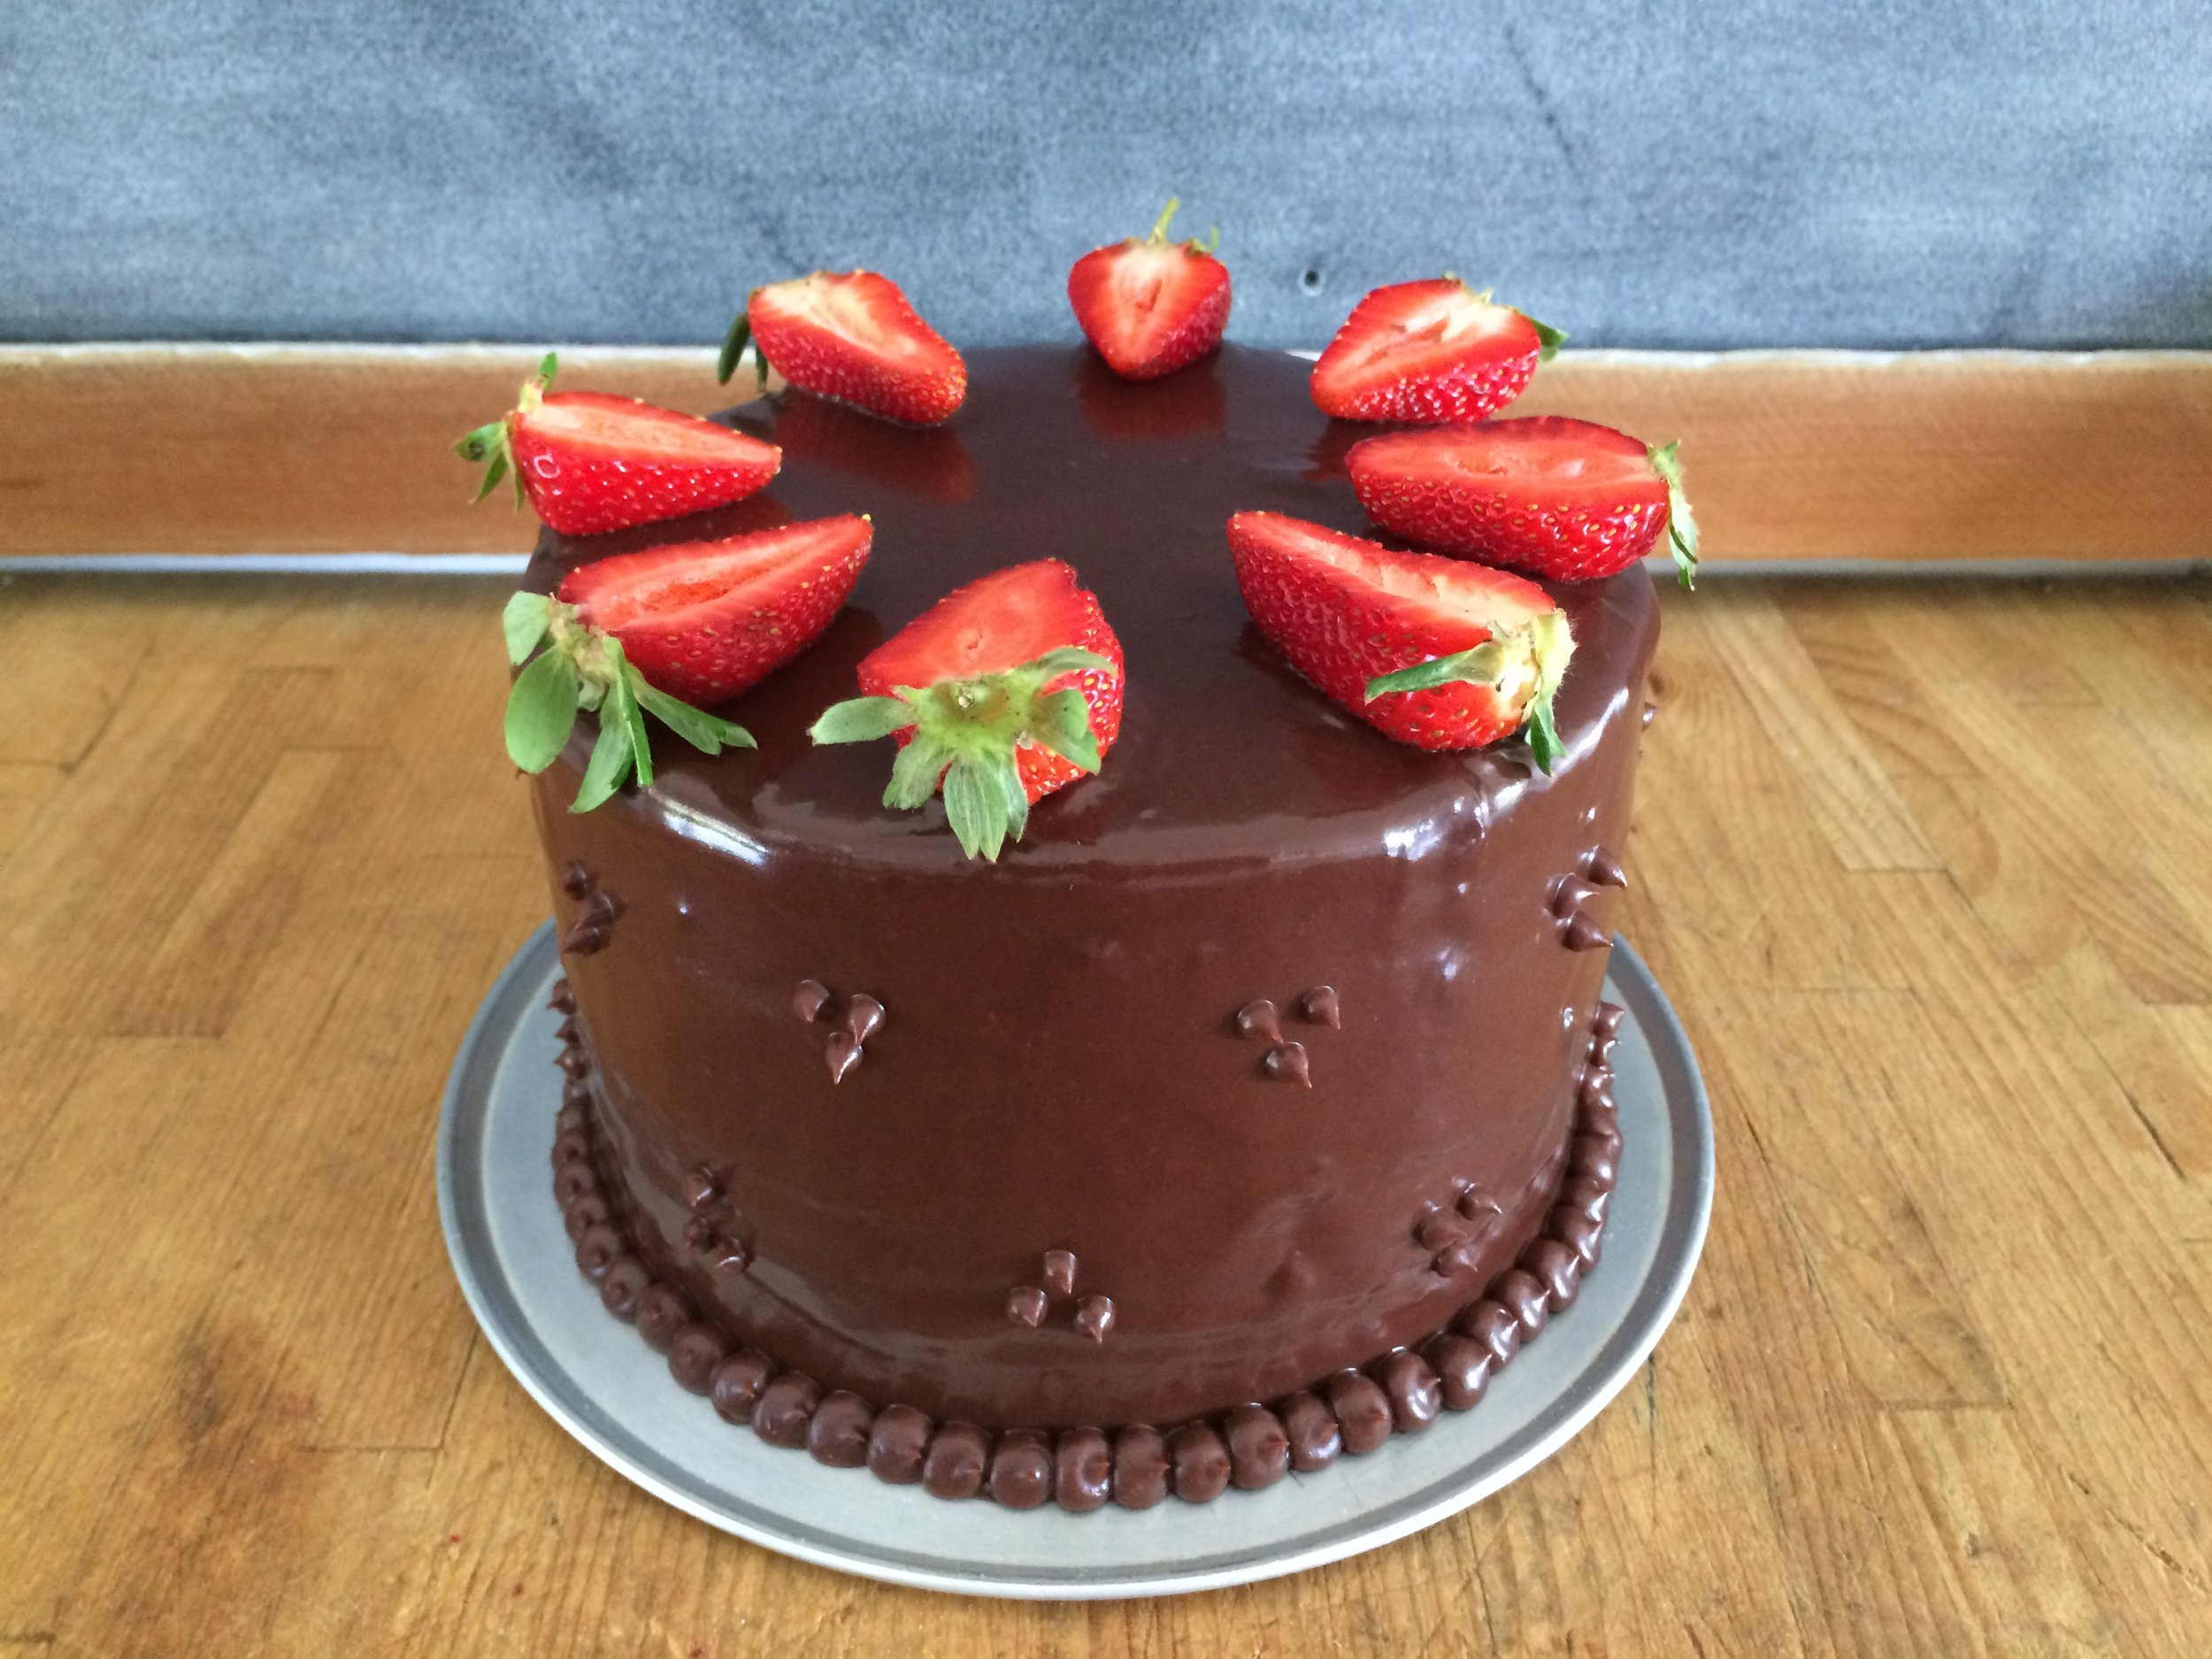 chocolate ganache with strawberries.jpg